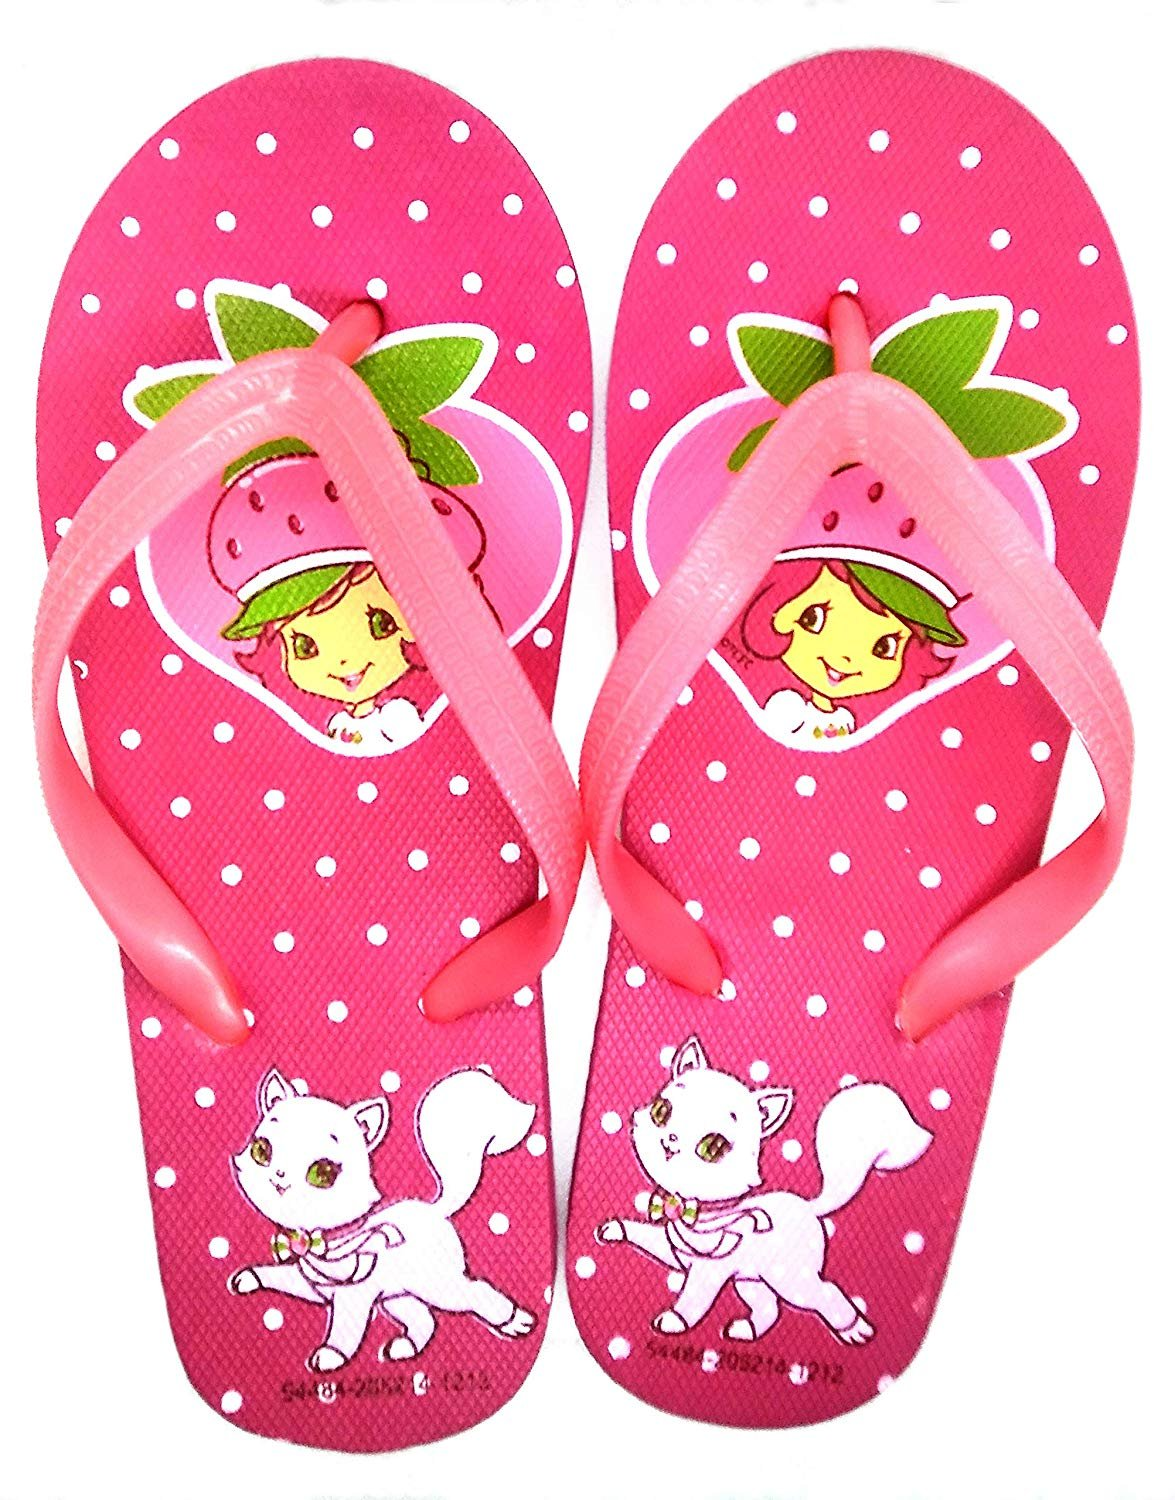 Strawberry Shortcake Flip Flops Sandals - Size 1-2 - Variation 1